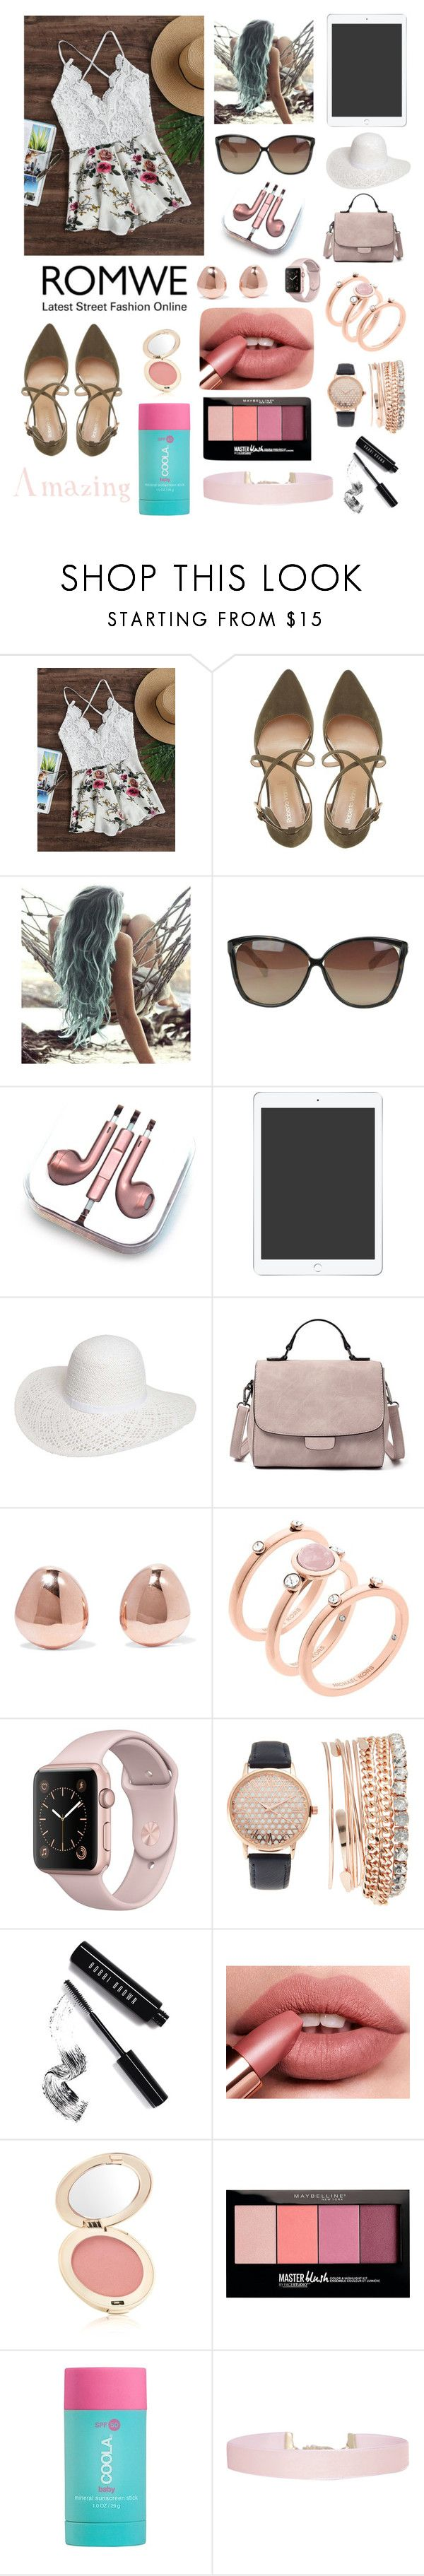 """""""Listening To Music On The Beach"""" by kmrichardson20 ❤ liked on Polyvore featuring Roberto Vianni, Linda Farrow, PhunkeeTree, Dorothy Perkins, Monica Vinader, Michael Kors, Jessica Carlyle, Bobbi Brown Cosmetics, Jane Iredale and Maybelline"""